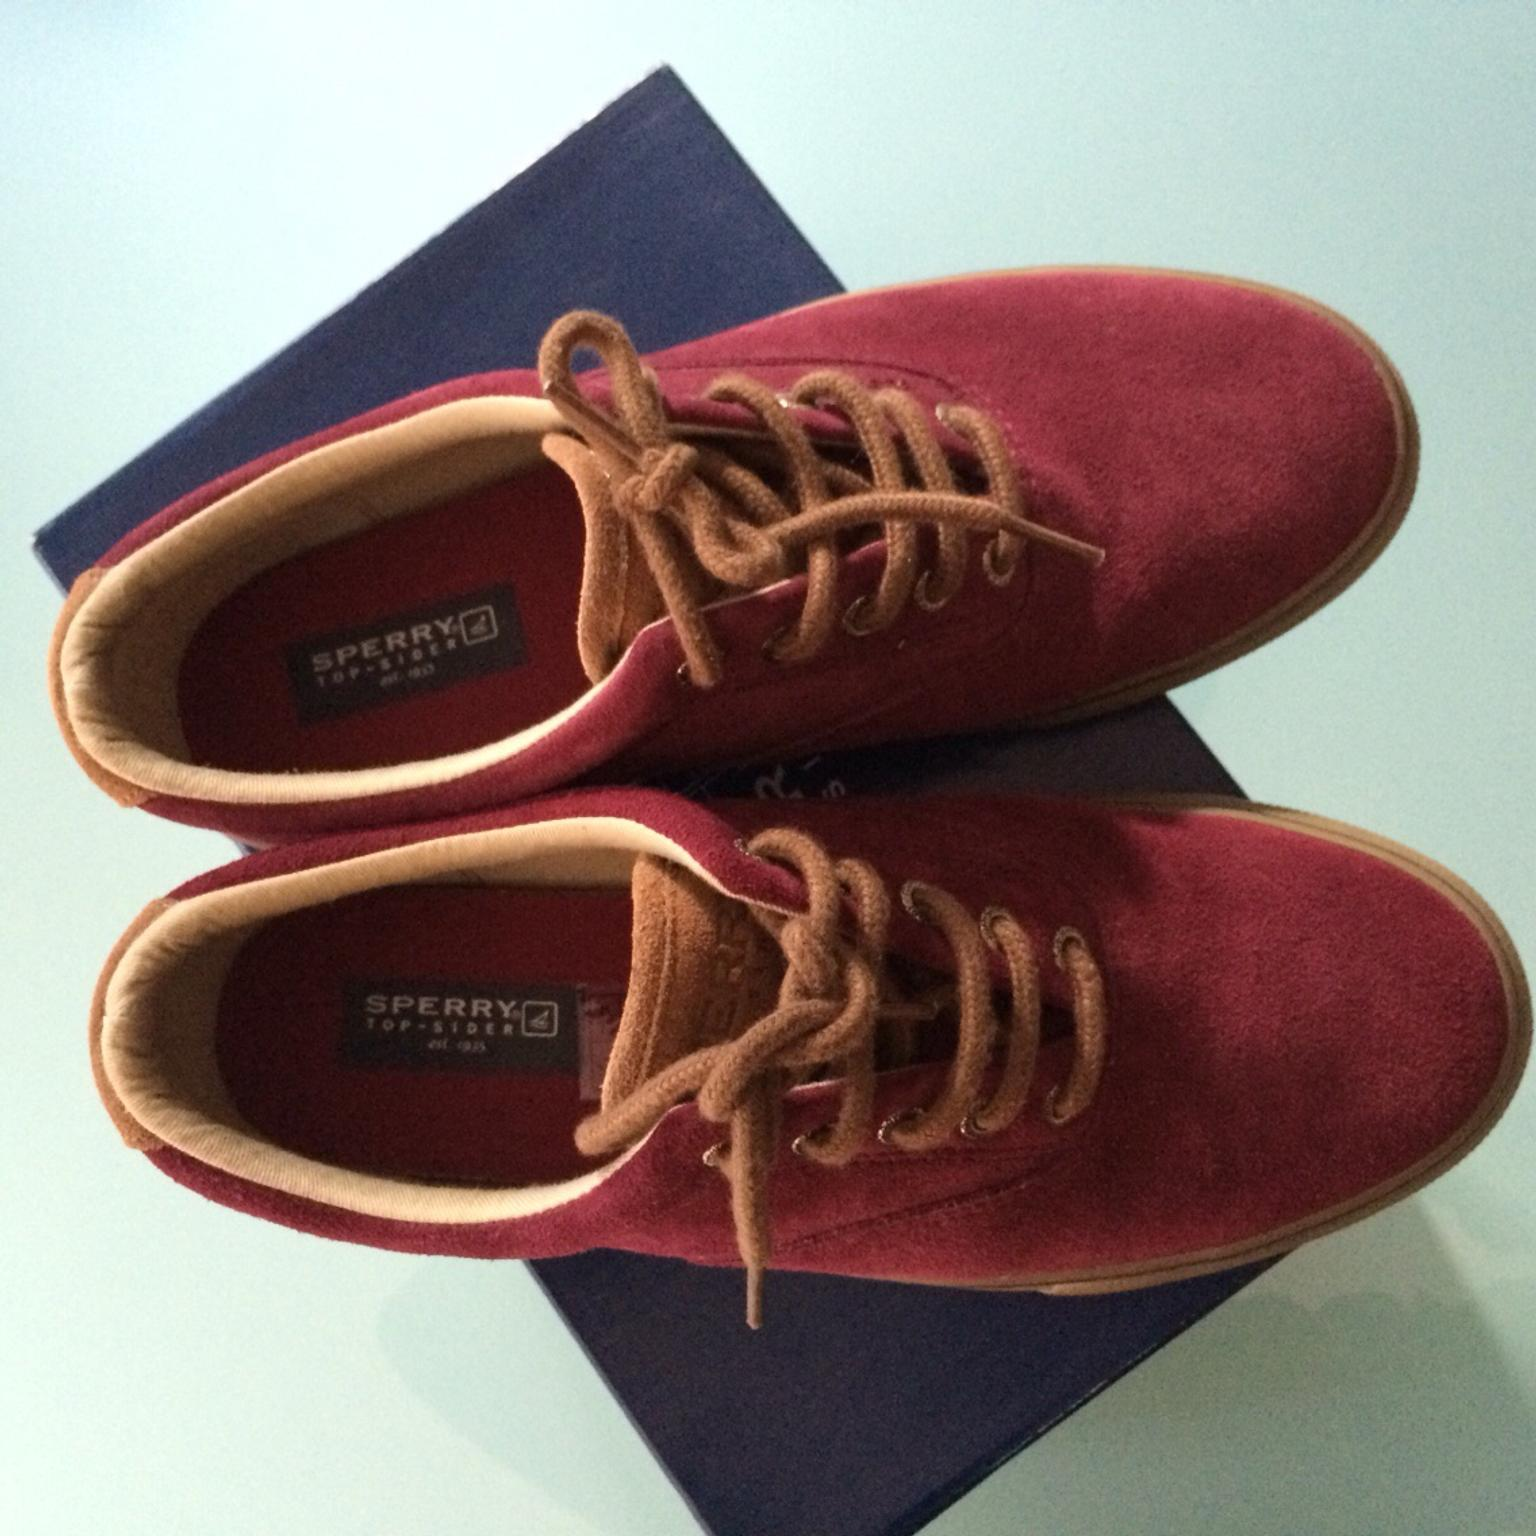 ADIDAS N.35 in 20833 Giussano for €30.00 for sale | Shpock